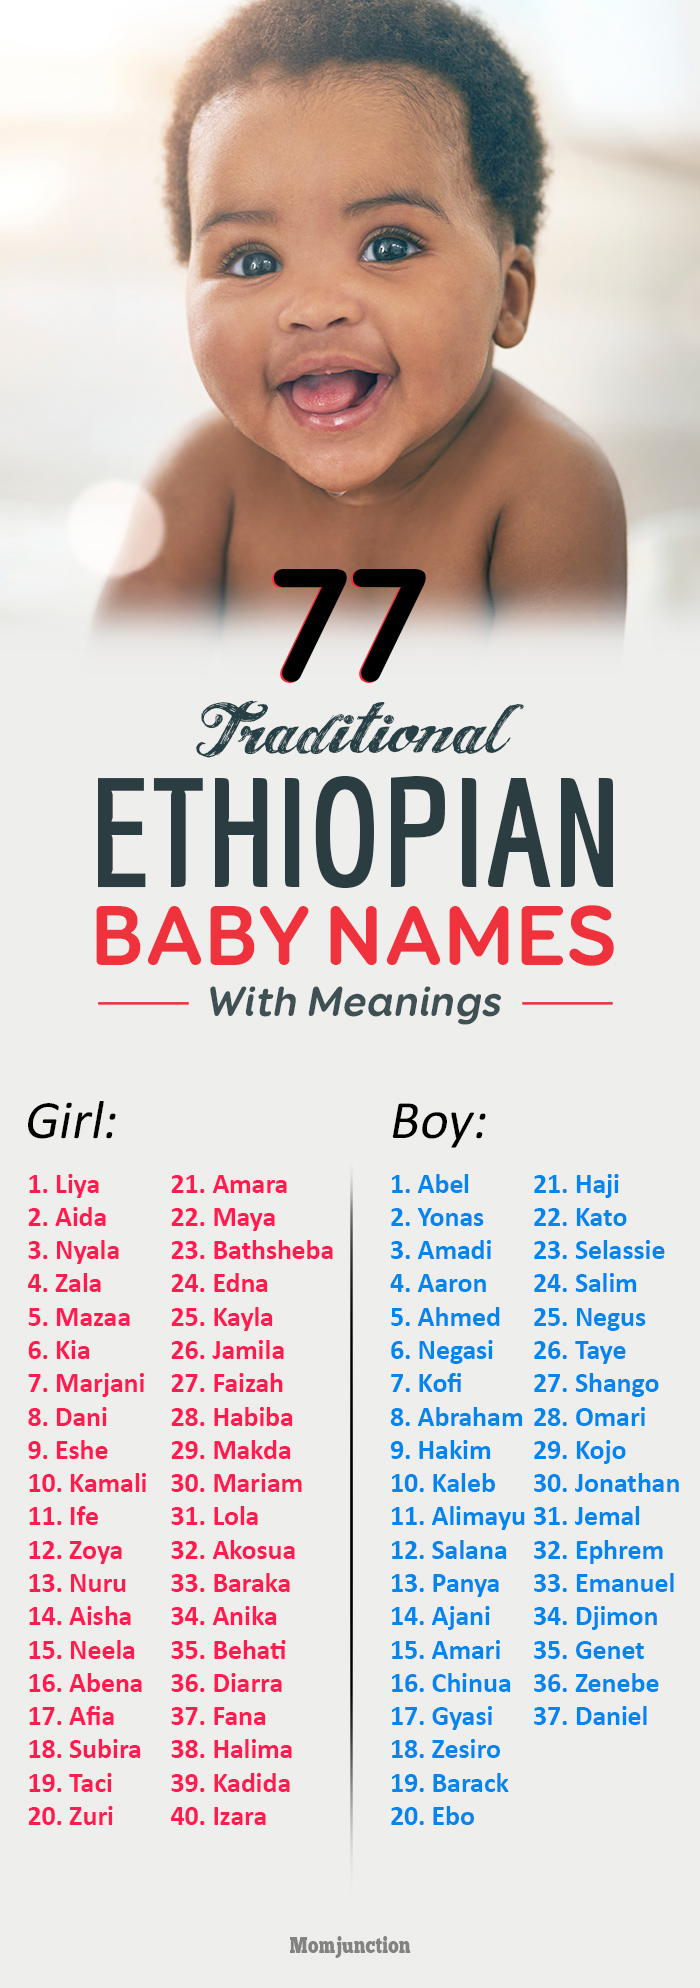 77 Traditional Ethiopian Baby Names With Meanings